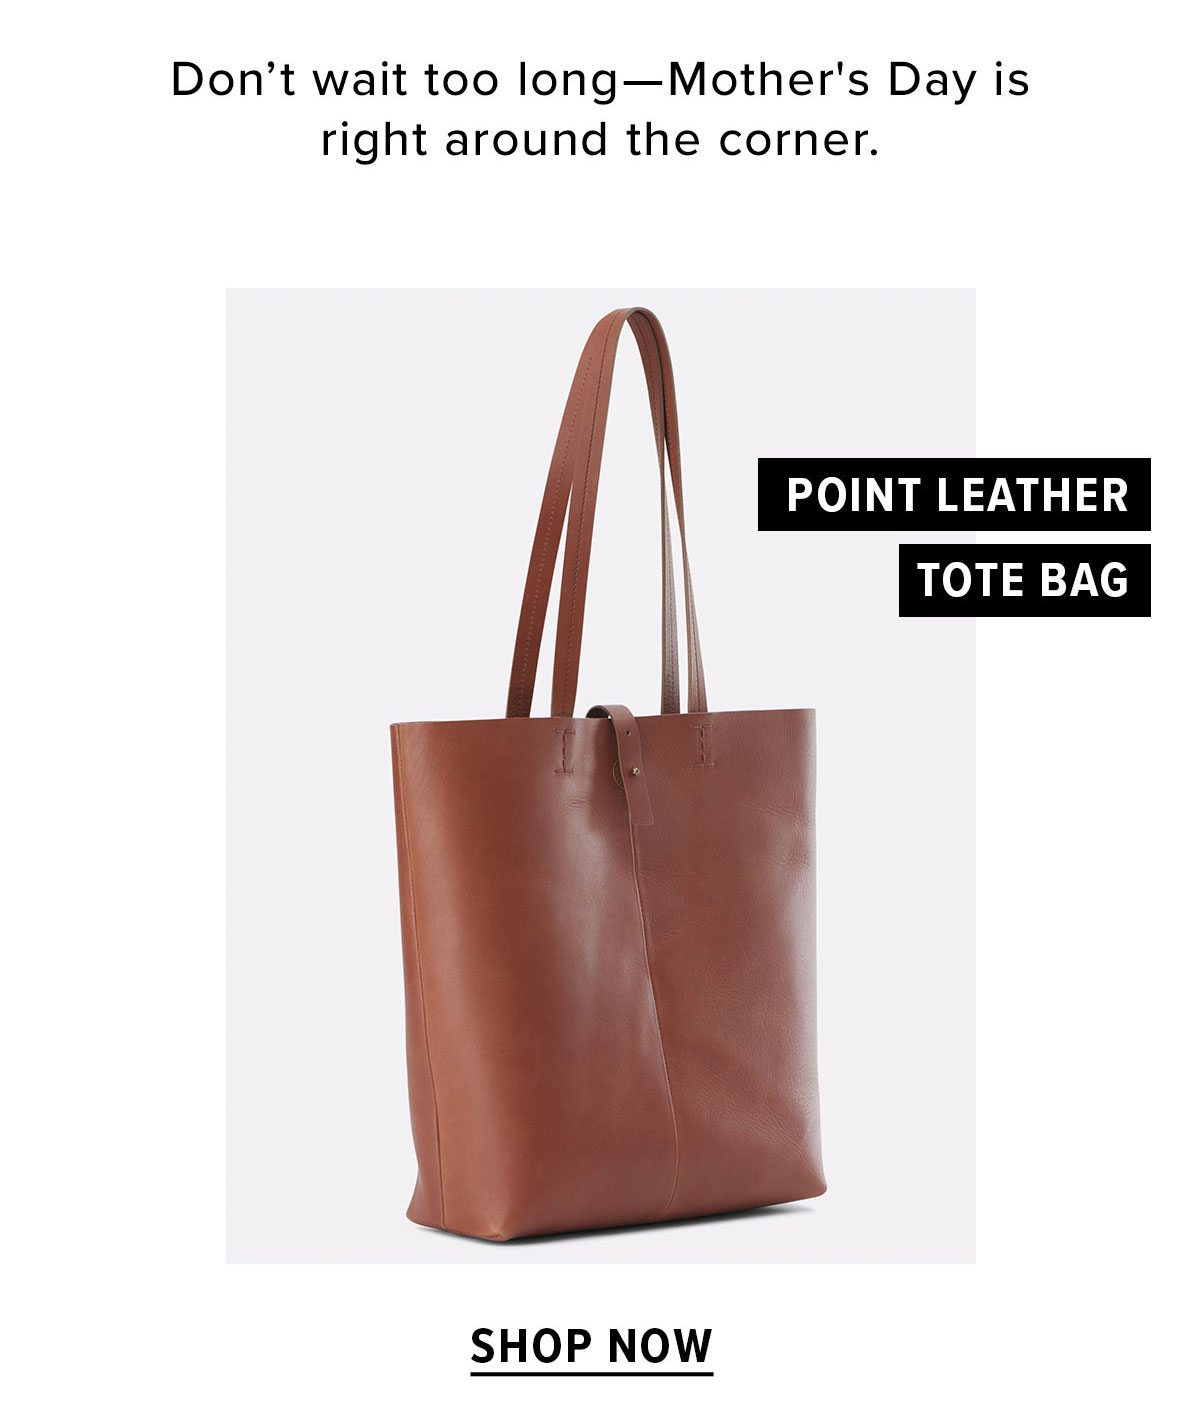 Point Leather Tote Bag